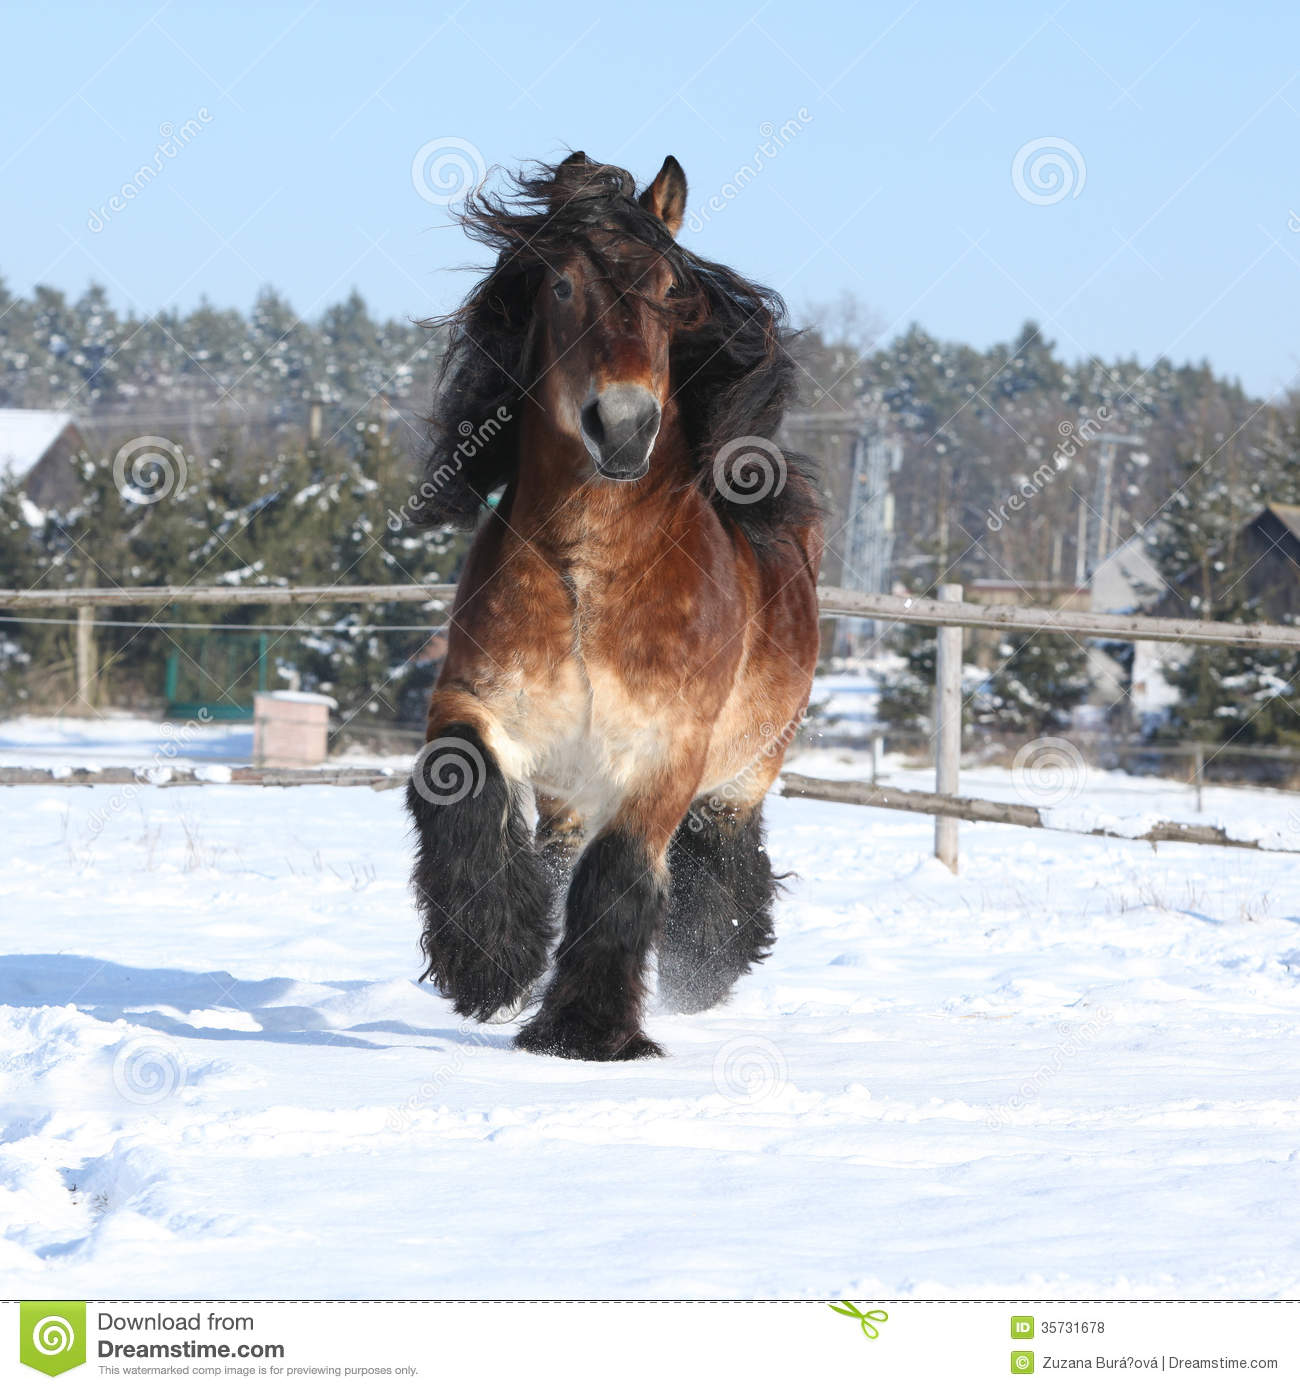 Dutch Draught Horse With Long Mane Running In Snow Stock Photo Image Of Gallop Slush 35731678